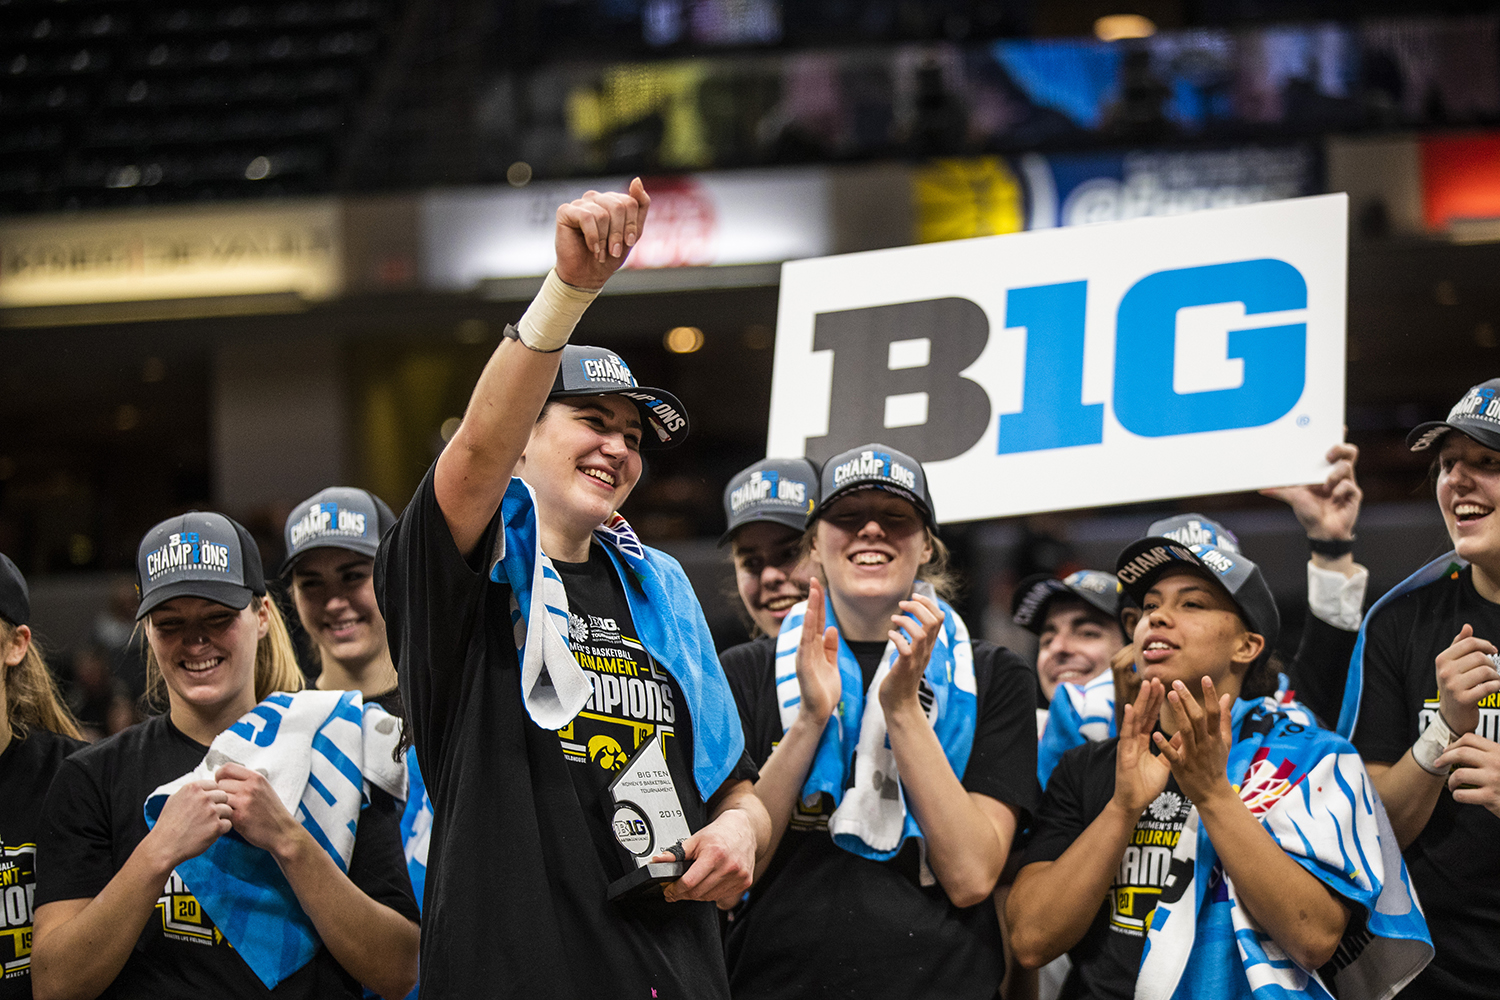 Iowa center Megan Gustafson celebrates after the women's Big Ten Championship basketball game vs. Maryland at Bankers Life Fieldhouse on Sunday, March 10, 2019. The Hawkeyes defeated the Terrapins 90-76 and are the Big Ten champions.